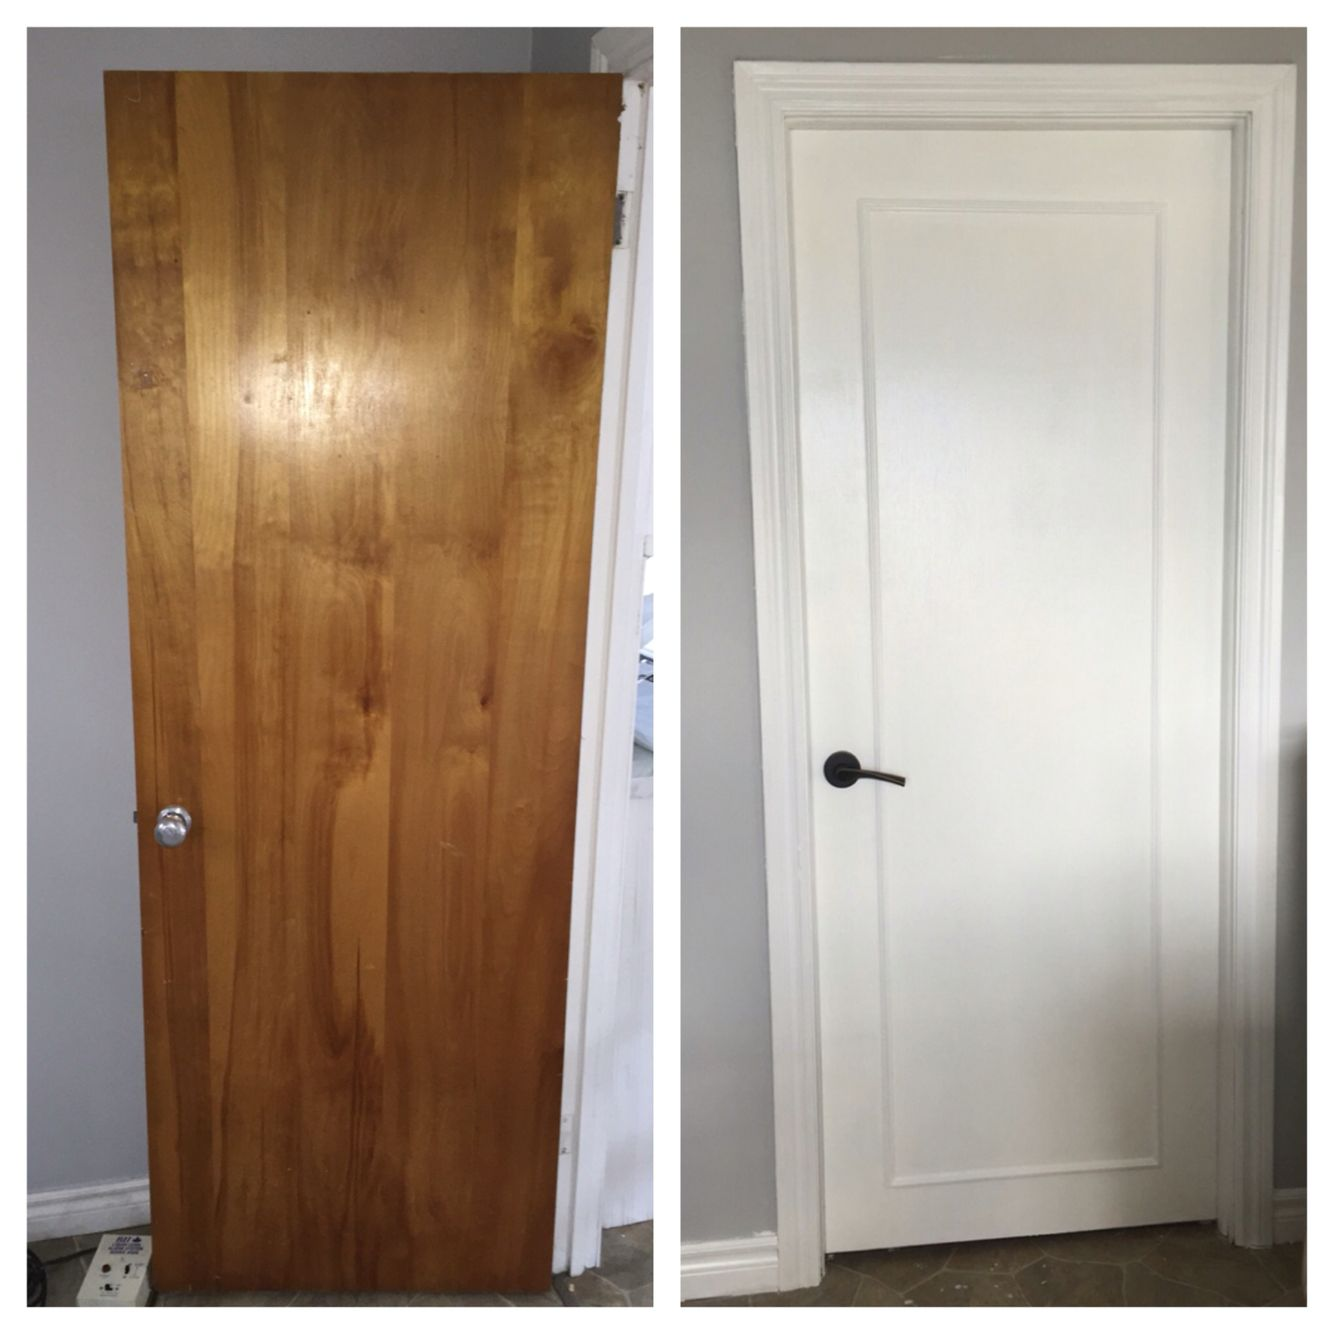 How To Paint White Interior Doors Look Like Wood